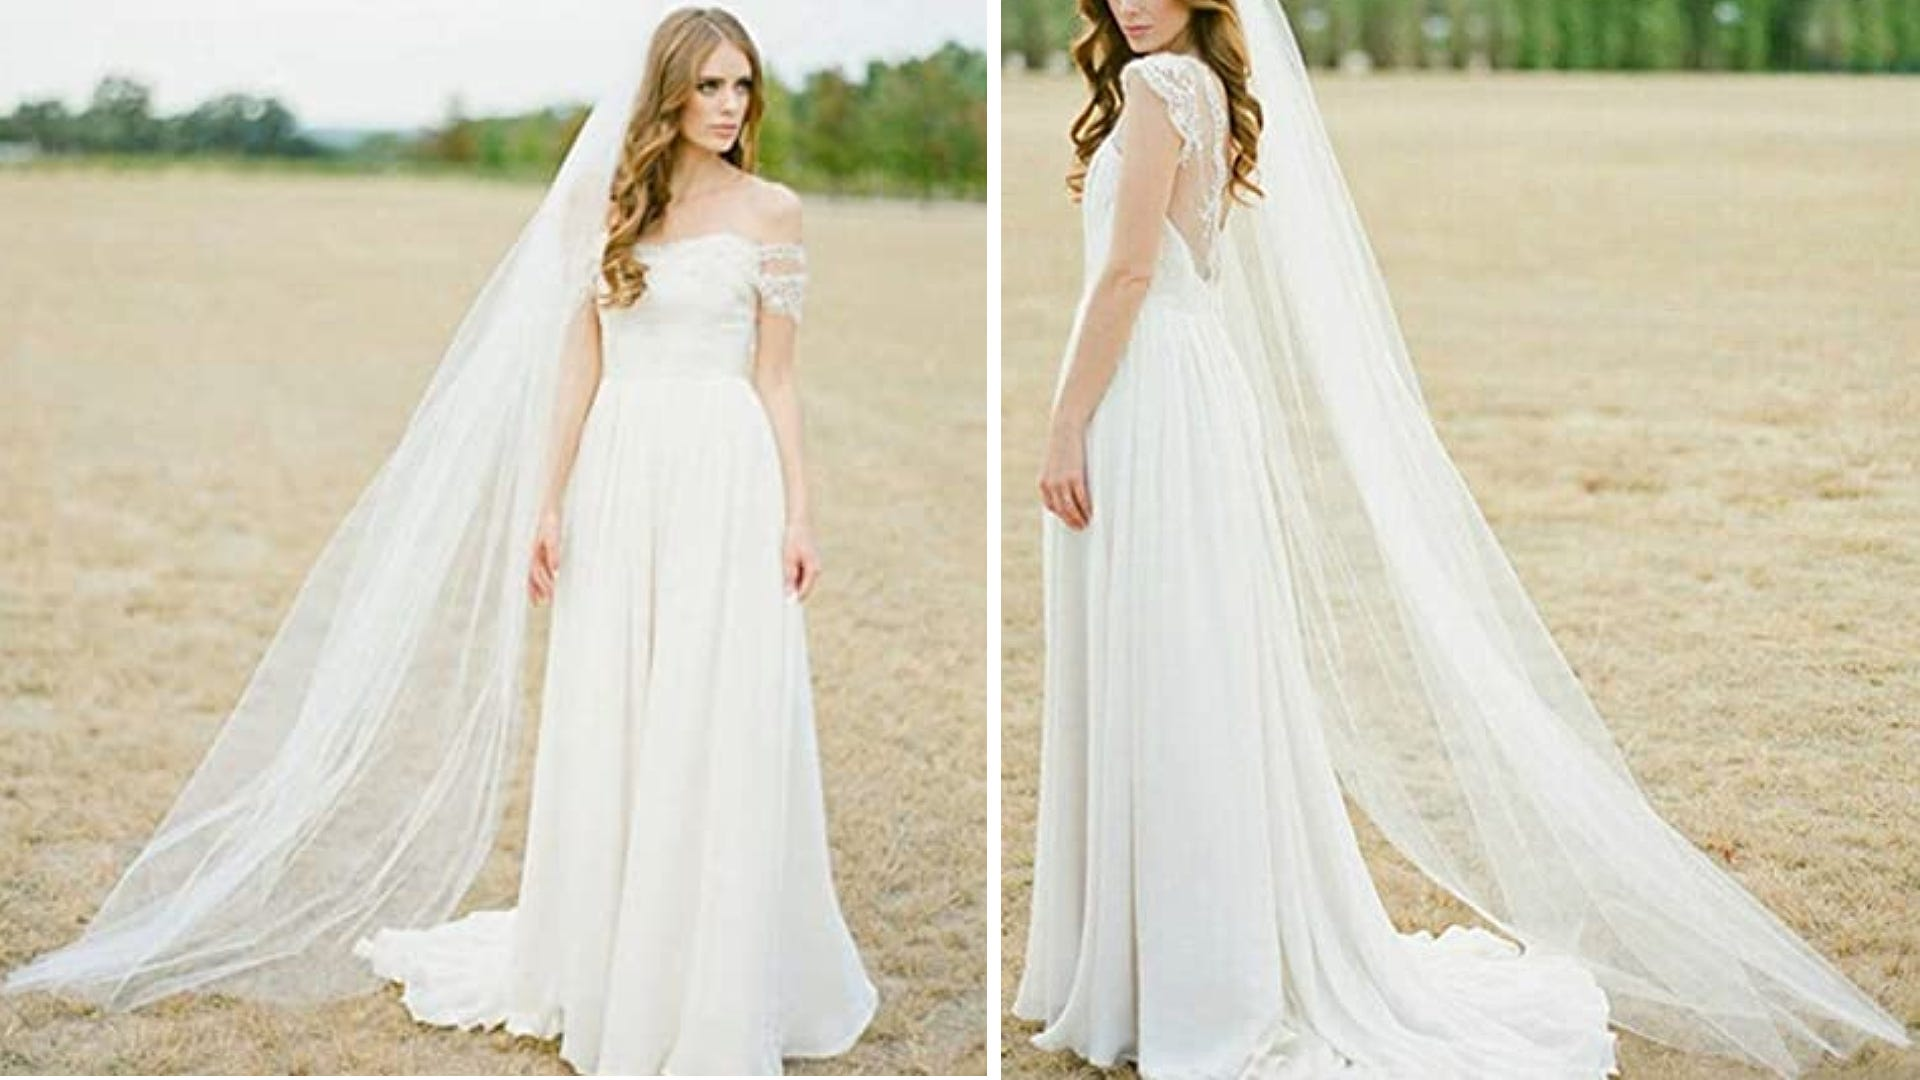 double pictures bride in cathedral veil and wedding dress in field